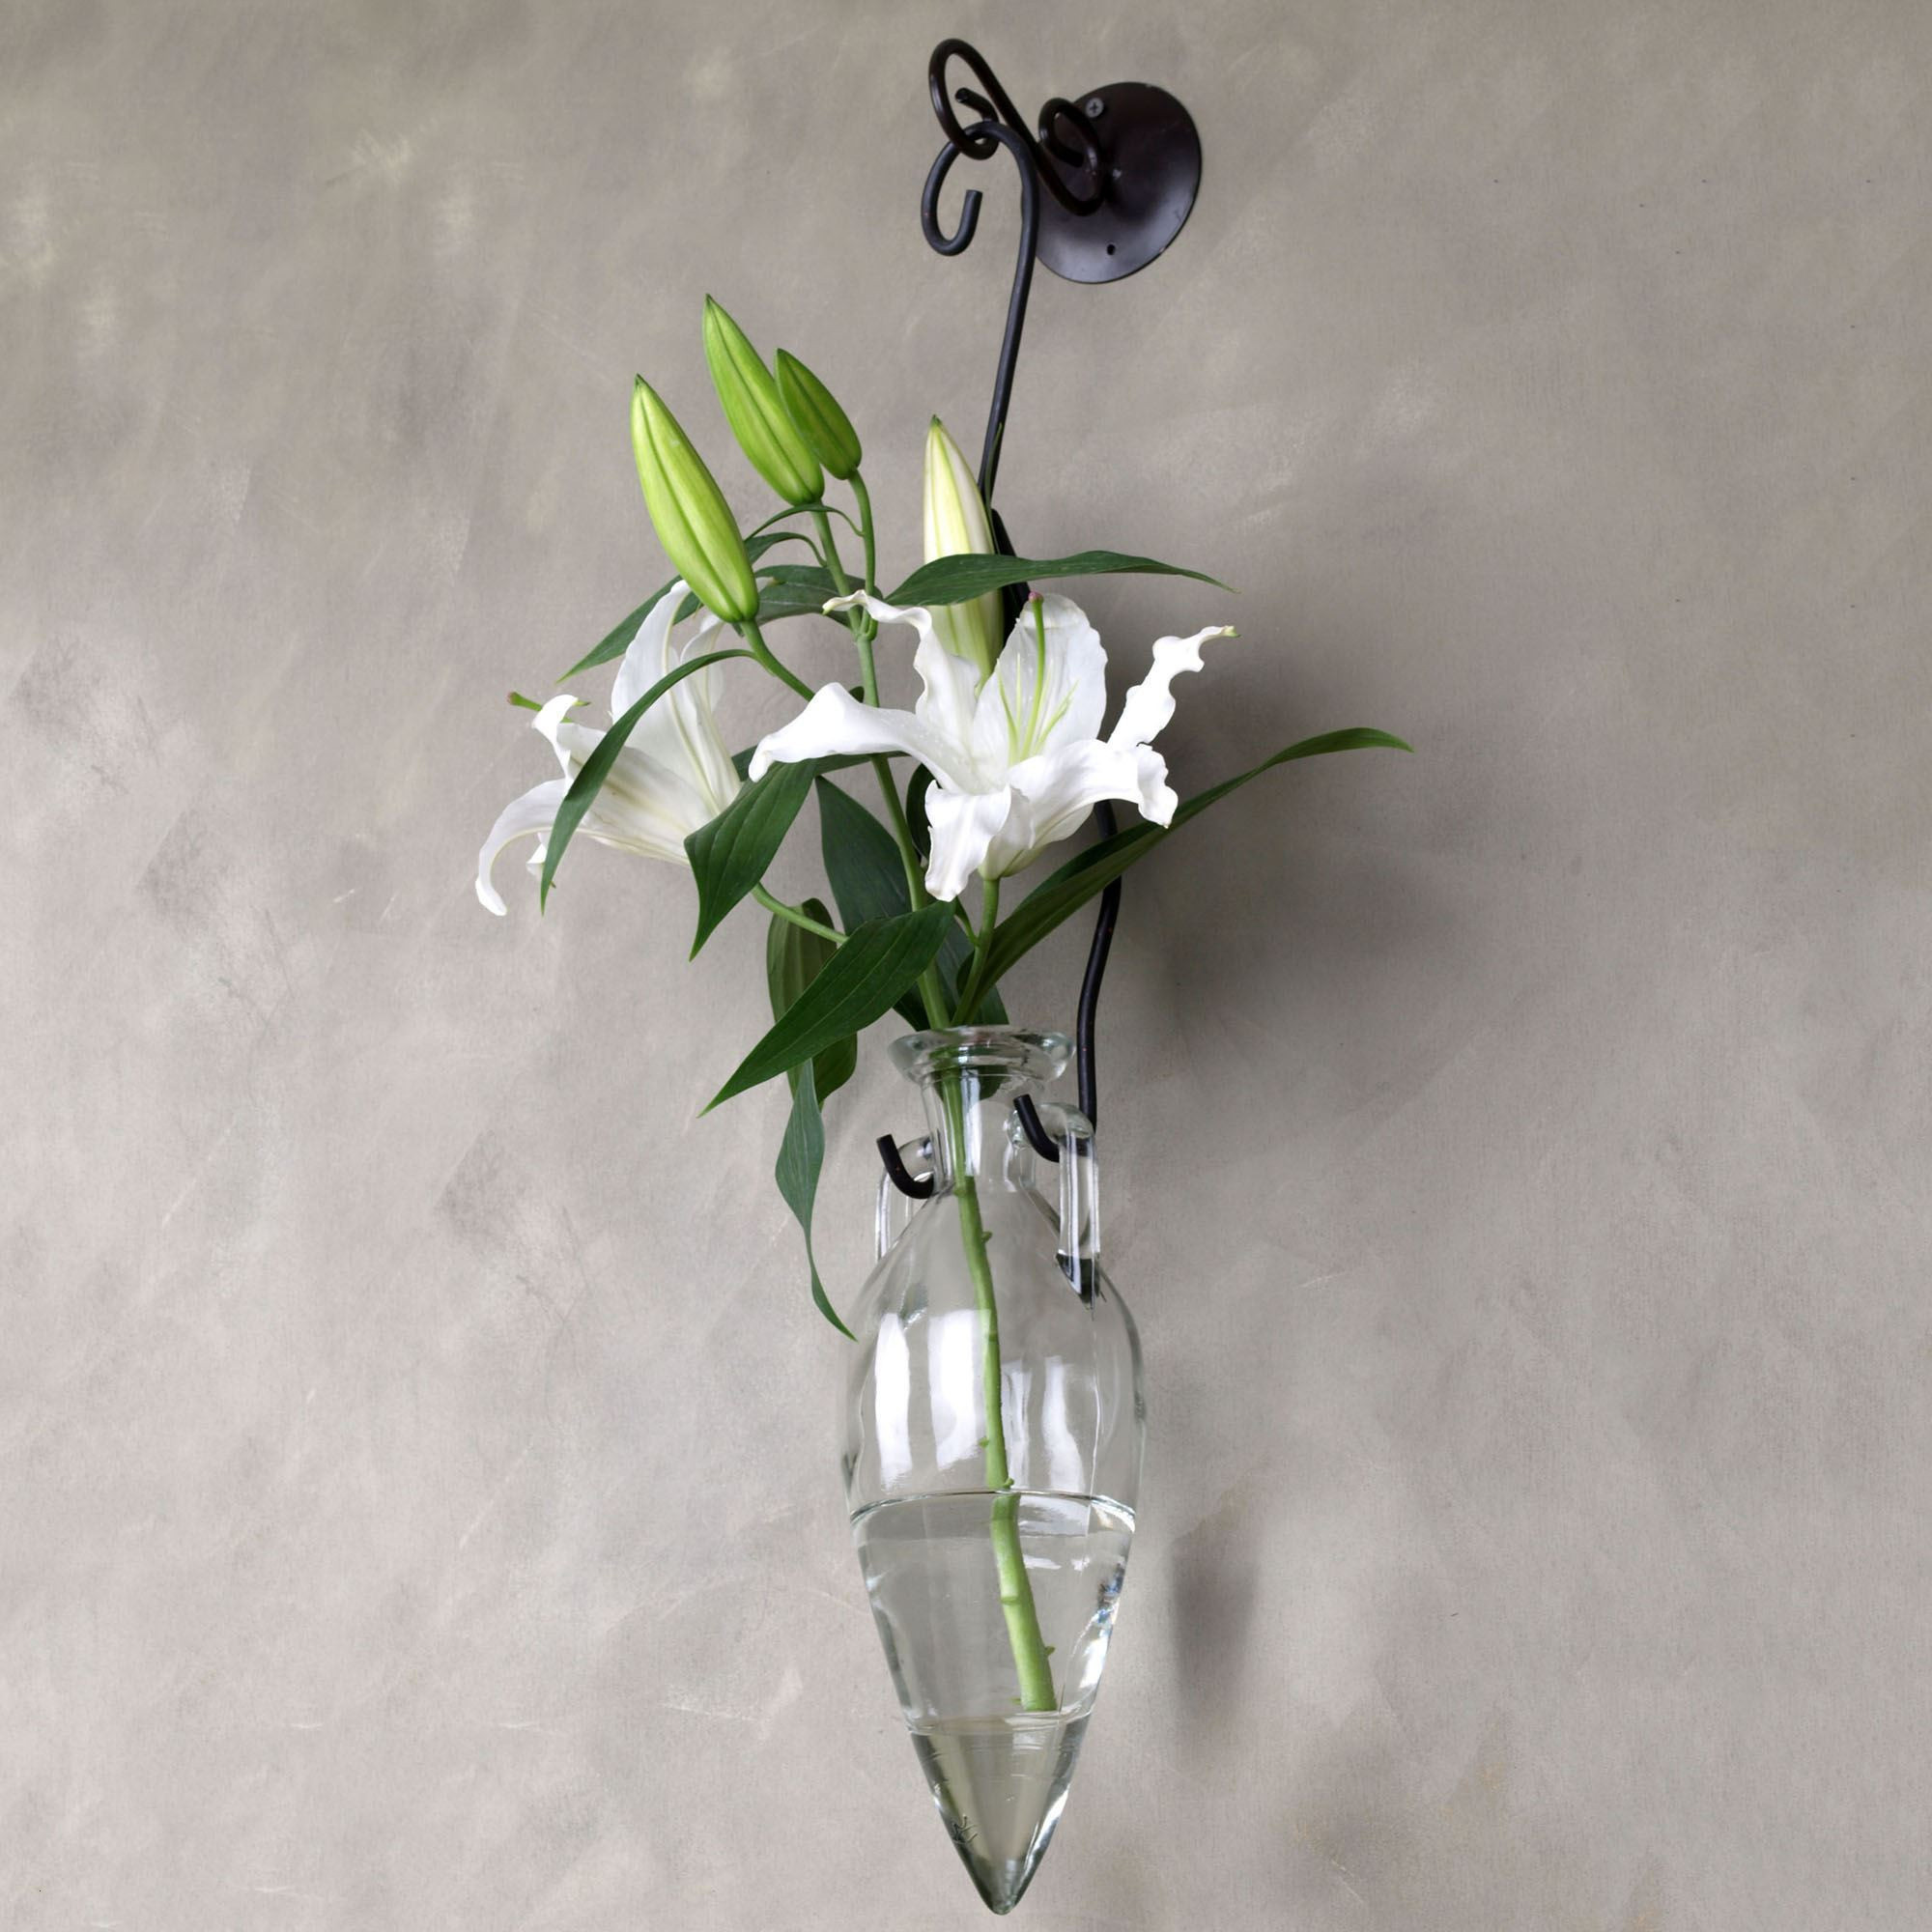 Trumpet Vase Pilsner Vase H 24 Of Vases Collection Page 53 Vases Artificial Plants Collection Inside Wall Flower Vases Pictures Wedding Wall Decor Unique H Vases Wall Hanging Flower Vase Newspaper Of Wall Flower Vases